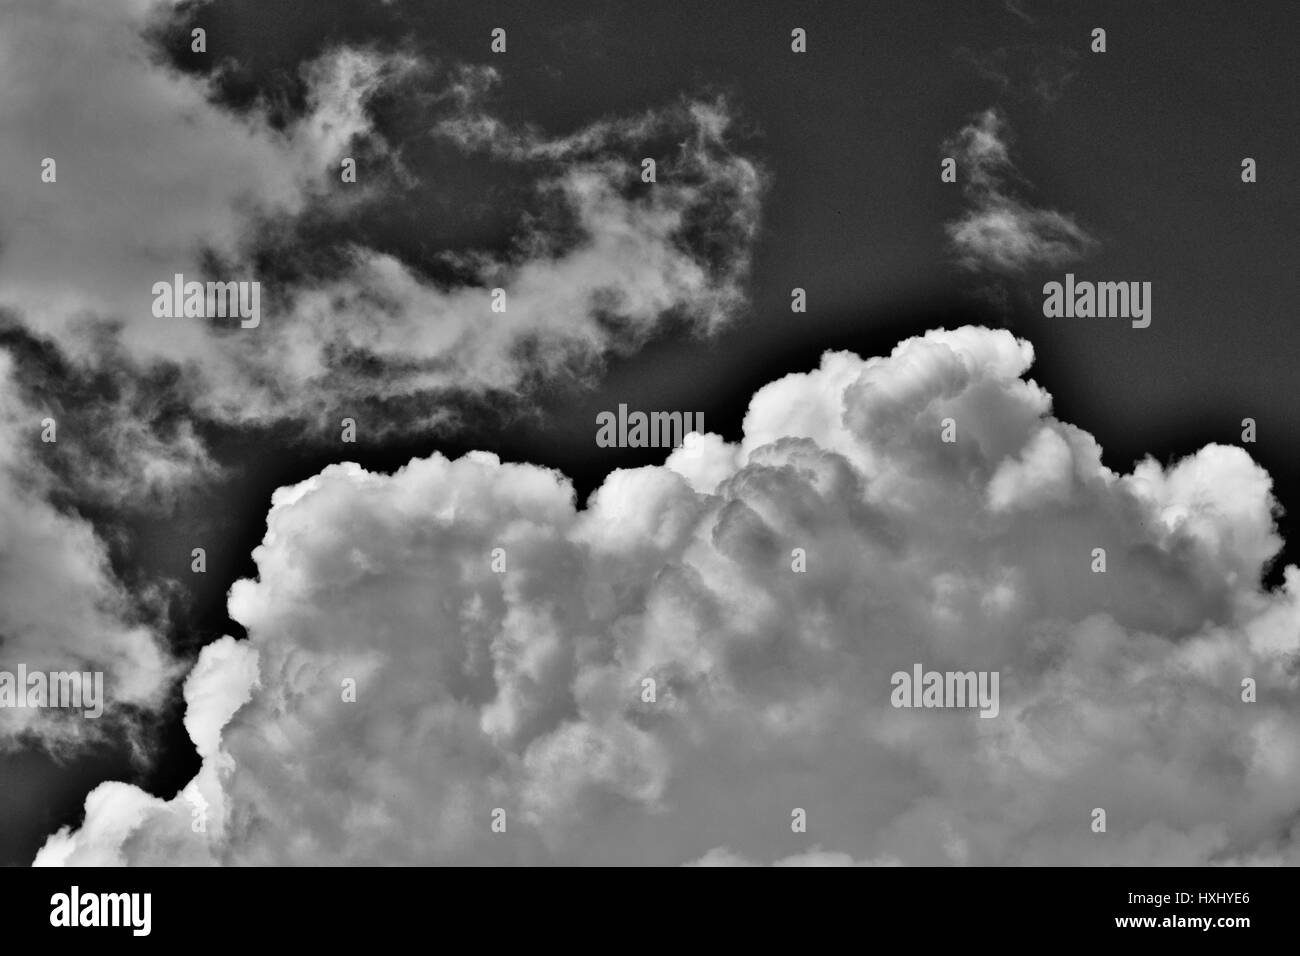 clouds in black and white - Stock Image